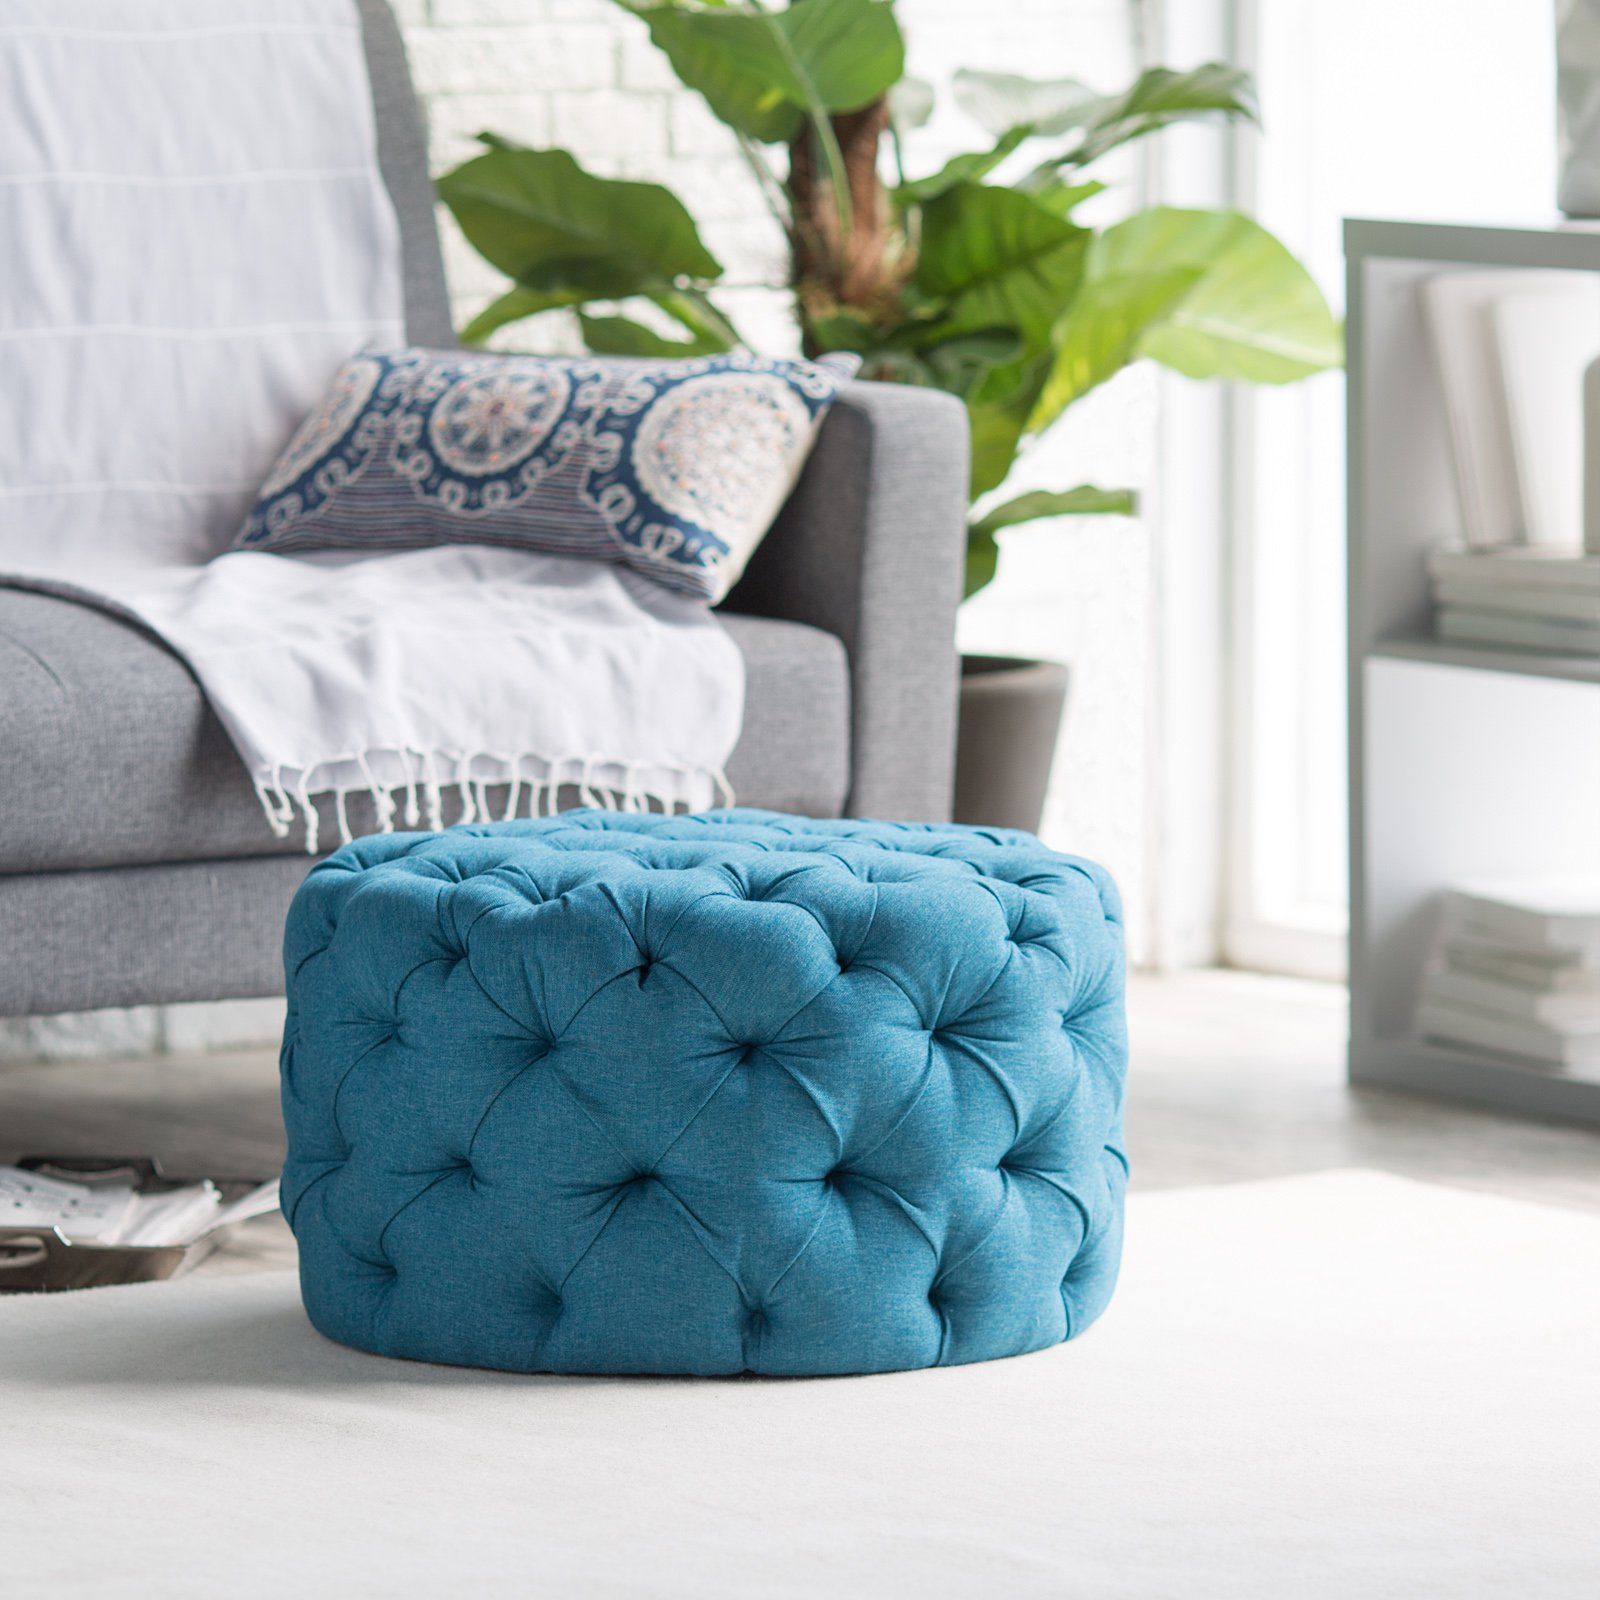 Belham Living Allover Round Tufted Ottoman - Teal